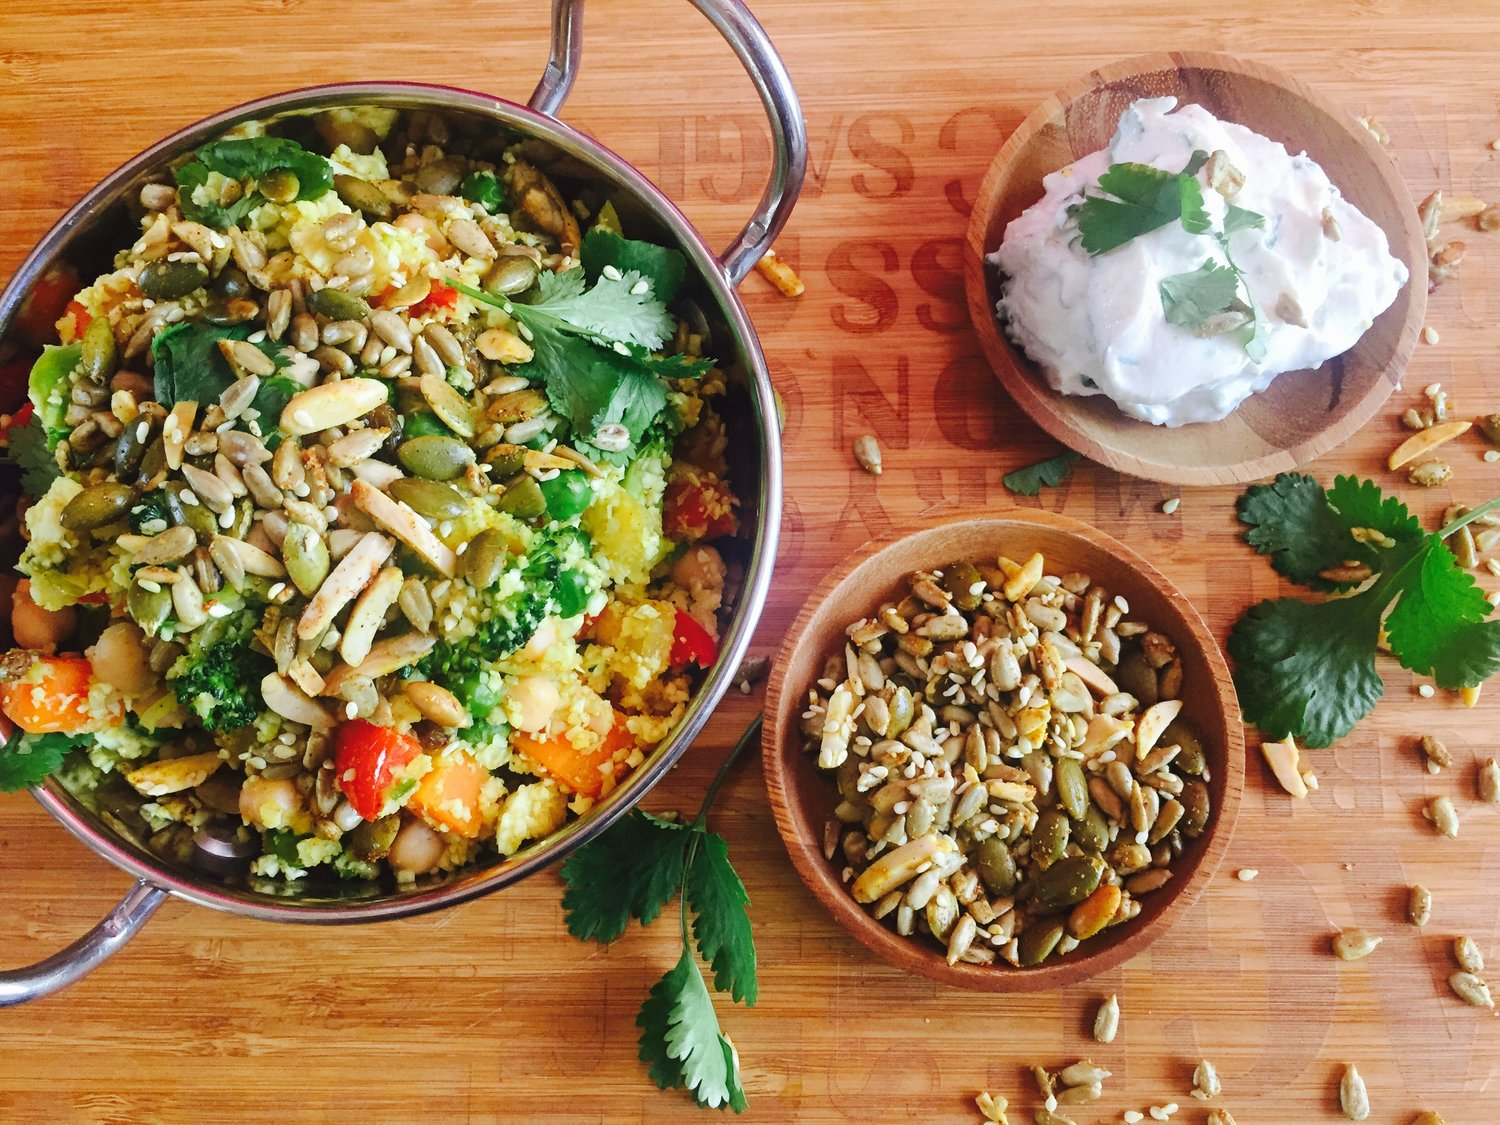 Chickpea and Veggie Biryani on Cauliflower Rice with Herbed Yogurt and Spiced Seeds